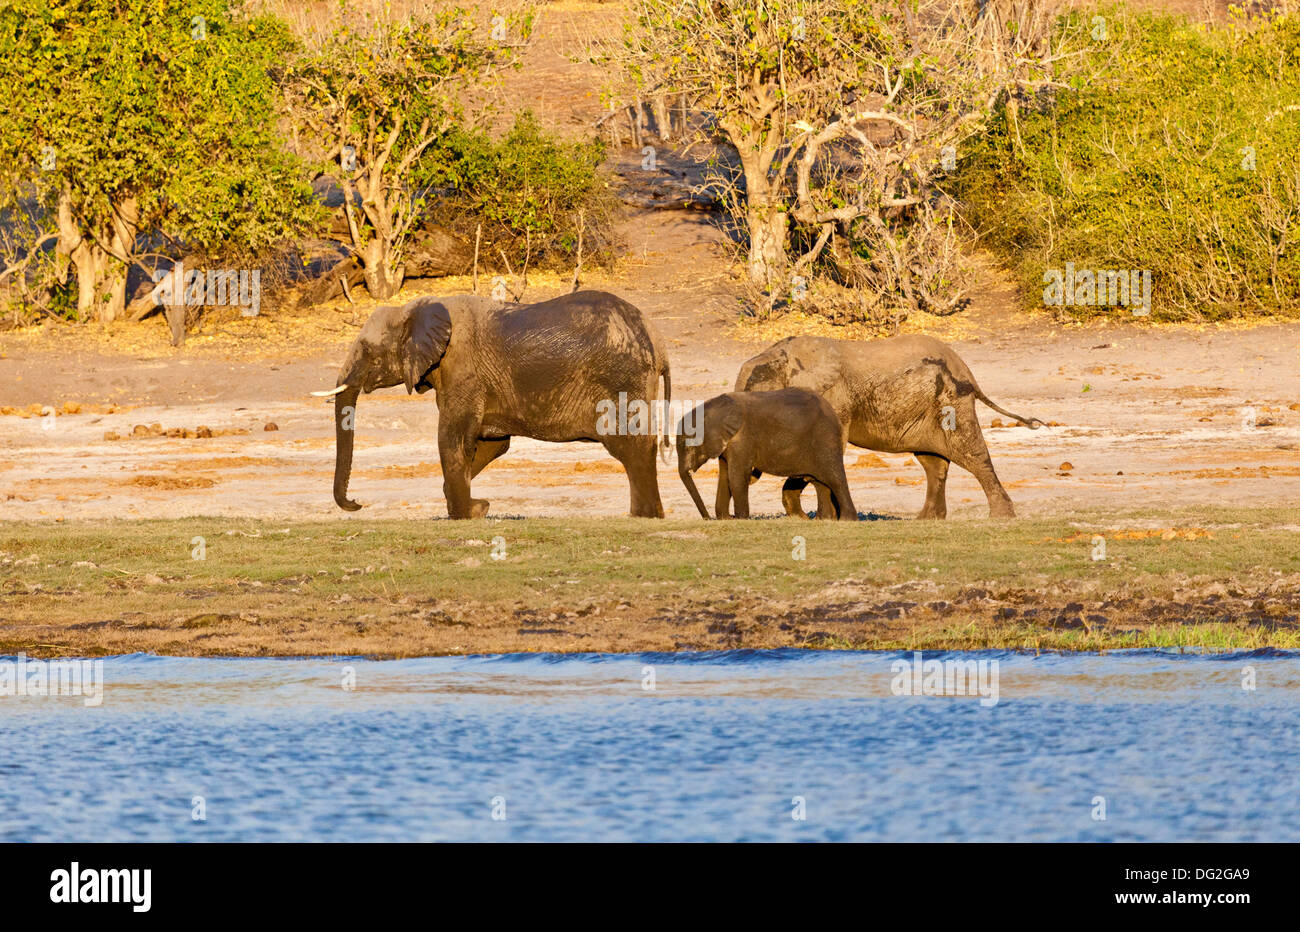 A breeding herd of African elephants (Loxodonta africana) by the banks of the River Chobe in Botswana Stock Photo